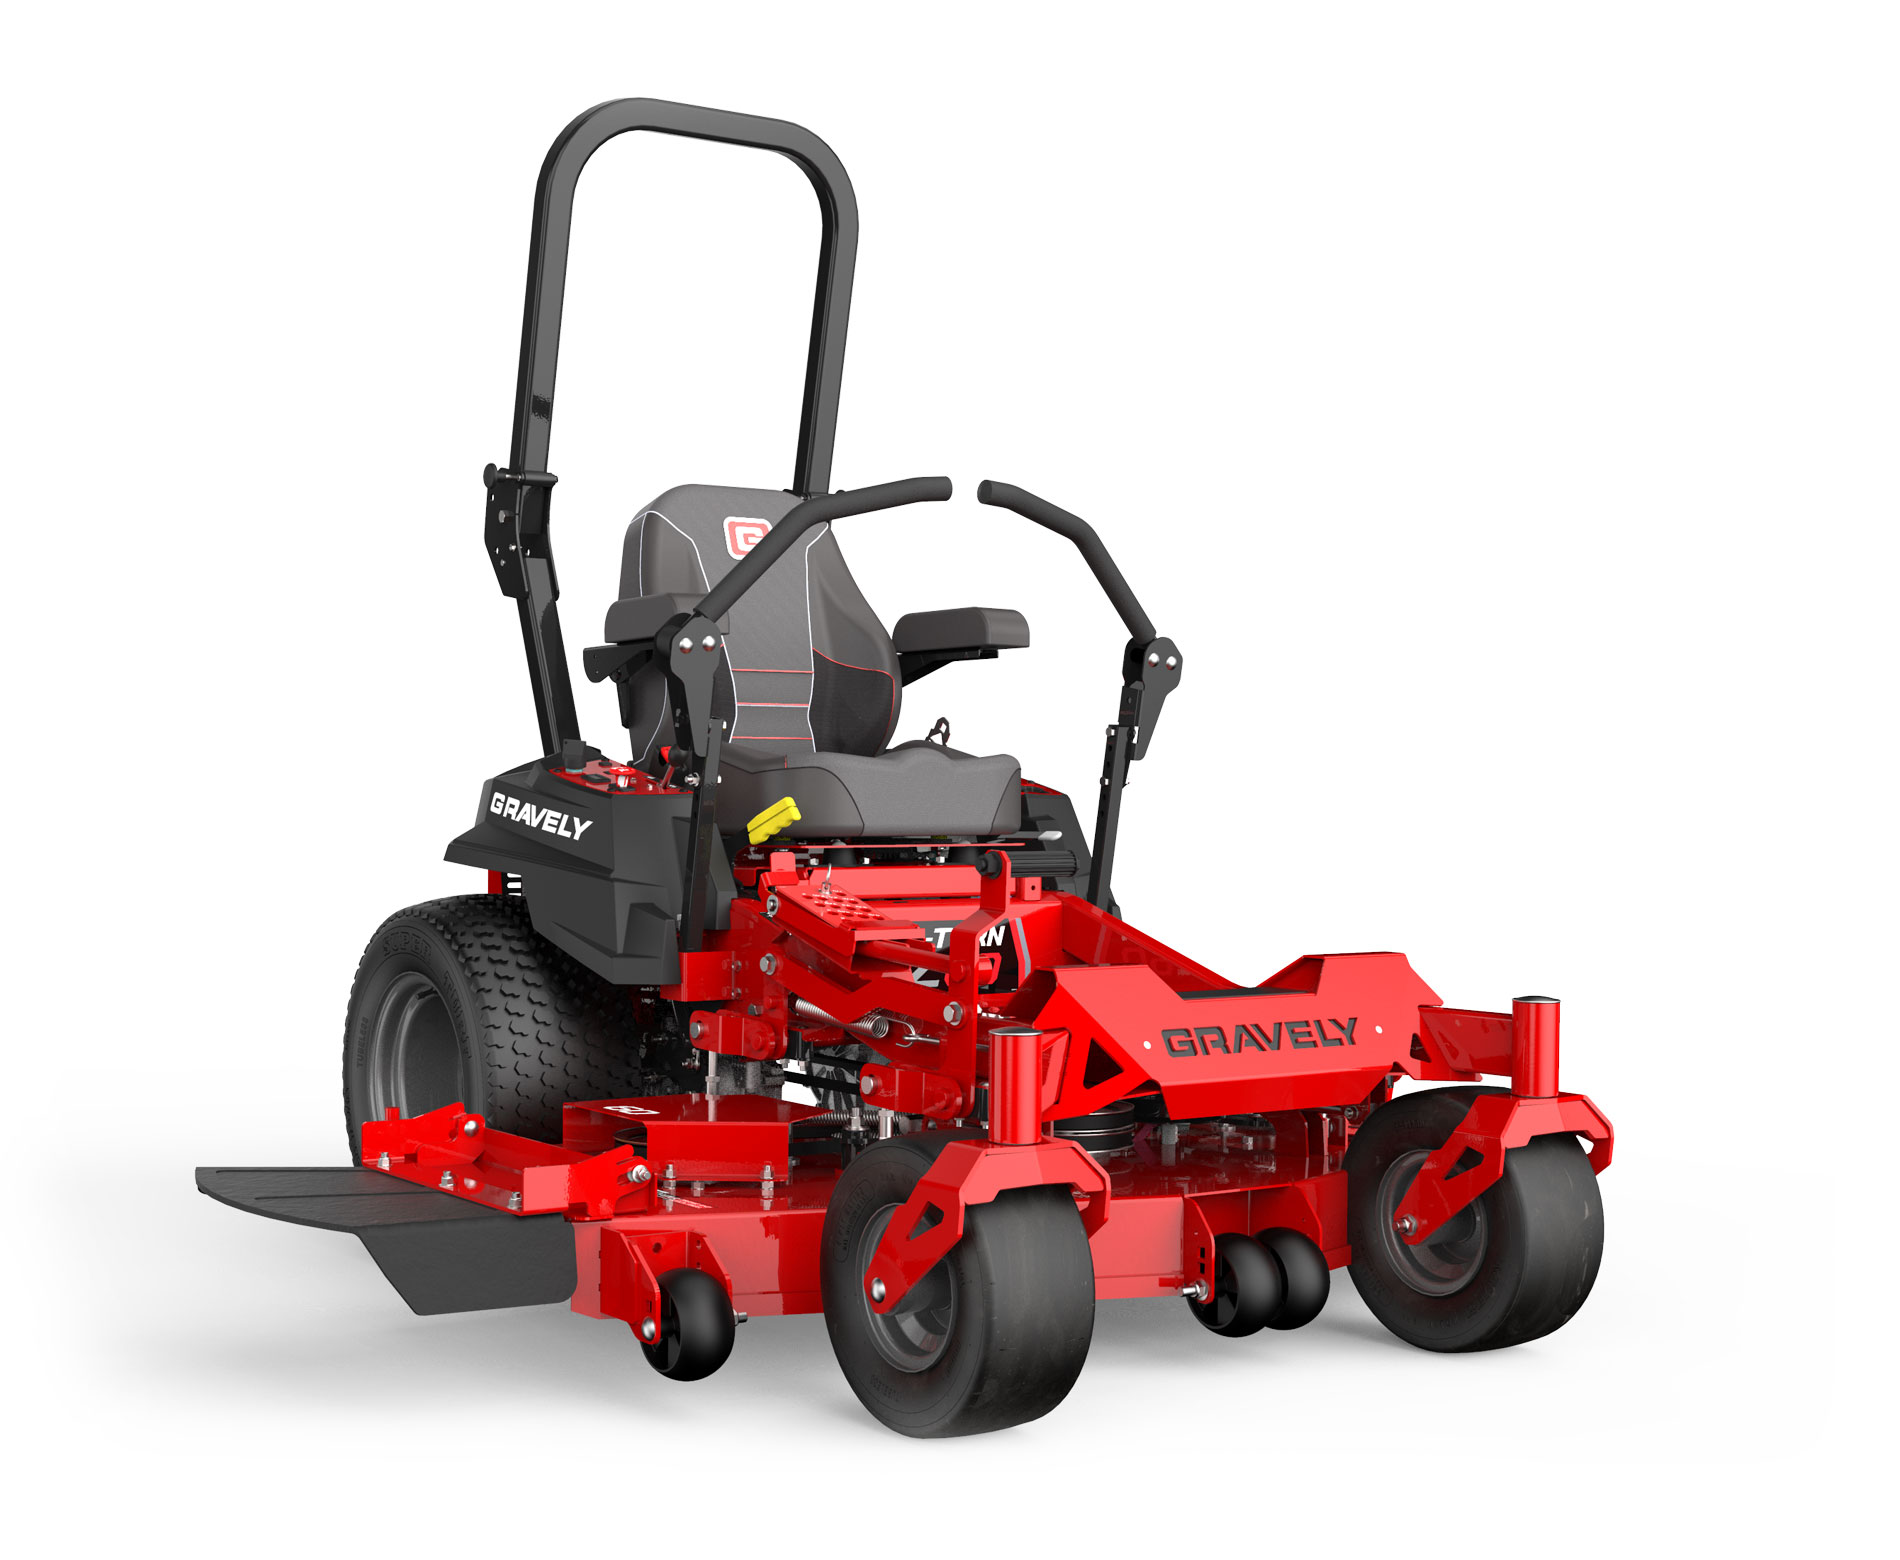 Product roundup: Gravely introduces new Pro-Turn Z